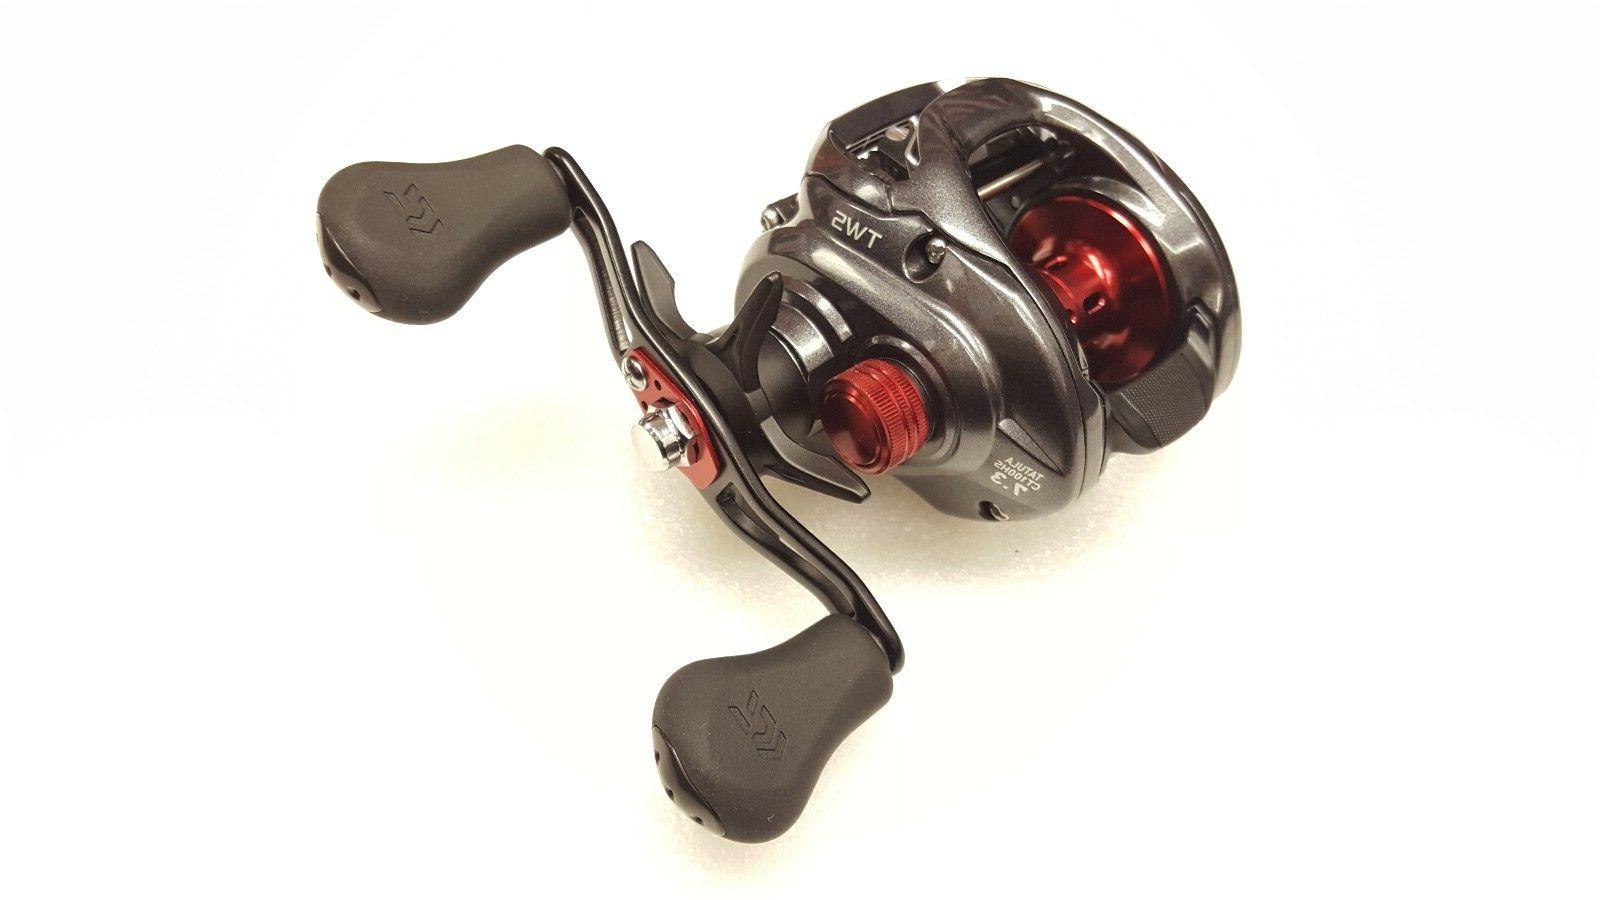 Daiwa Tatula CT 100HS 7.3:1 Right Hand Baitcast Fishing Reel